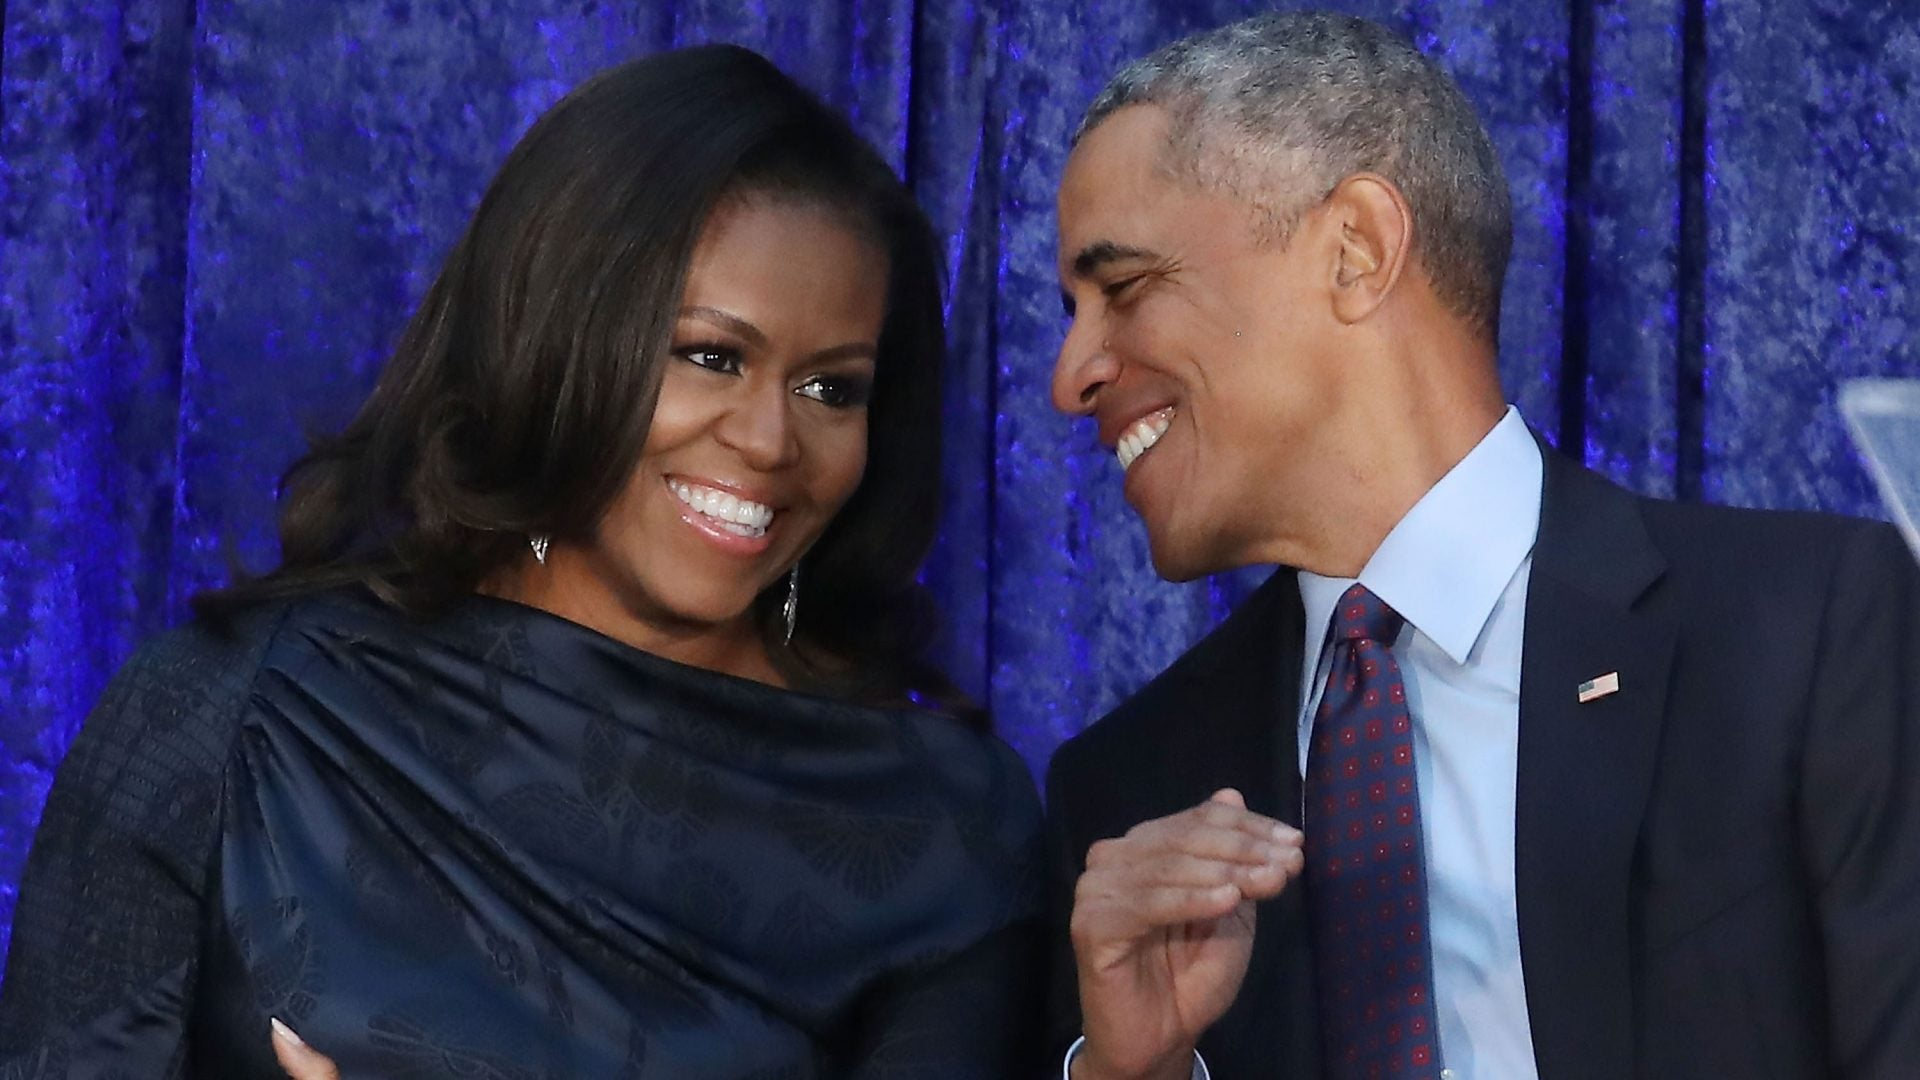 Barack Obama Celebrates Michelle Obama's Birthday With A Loving Message